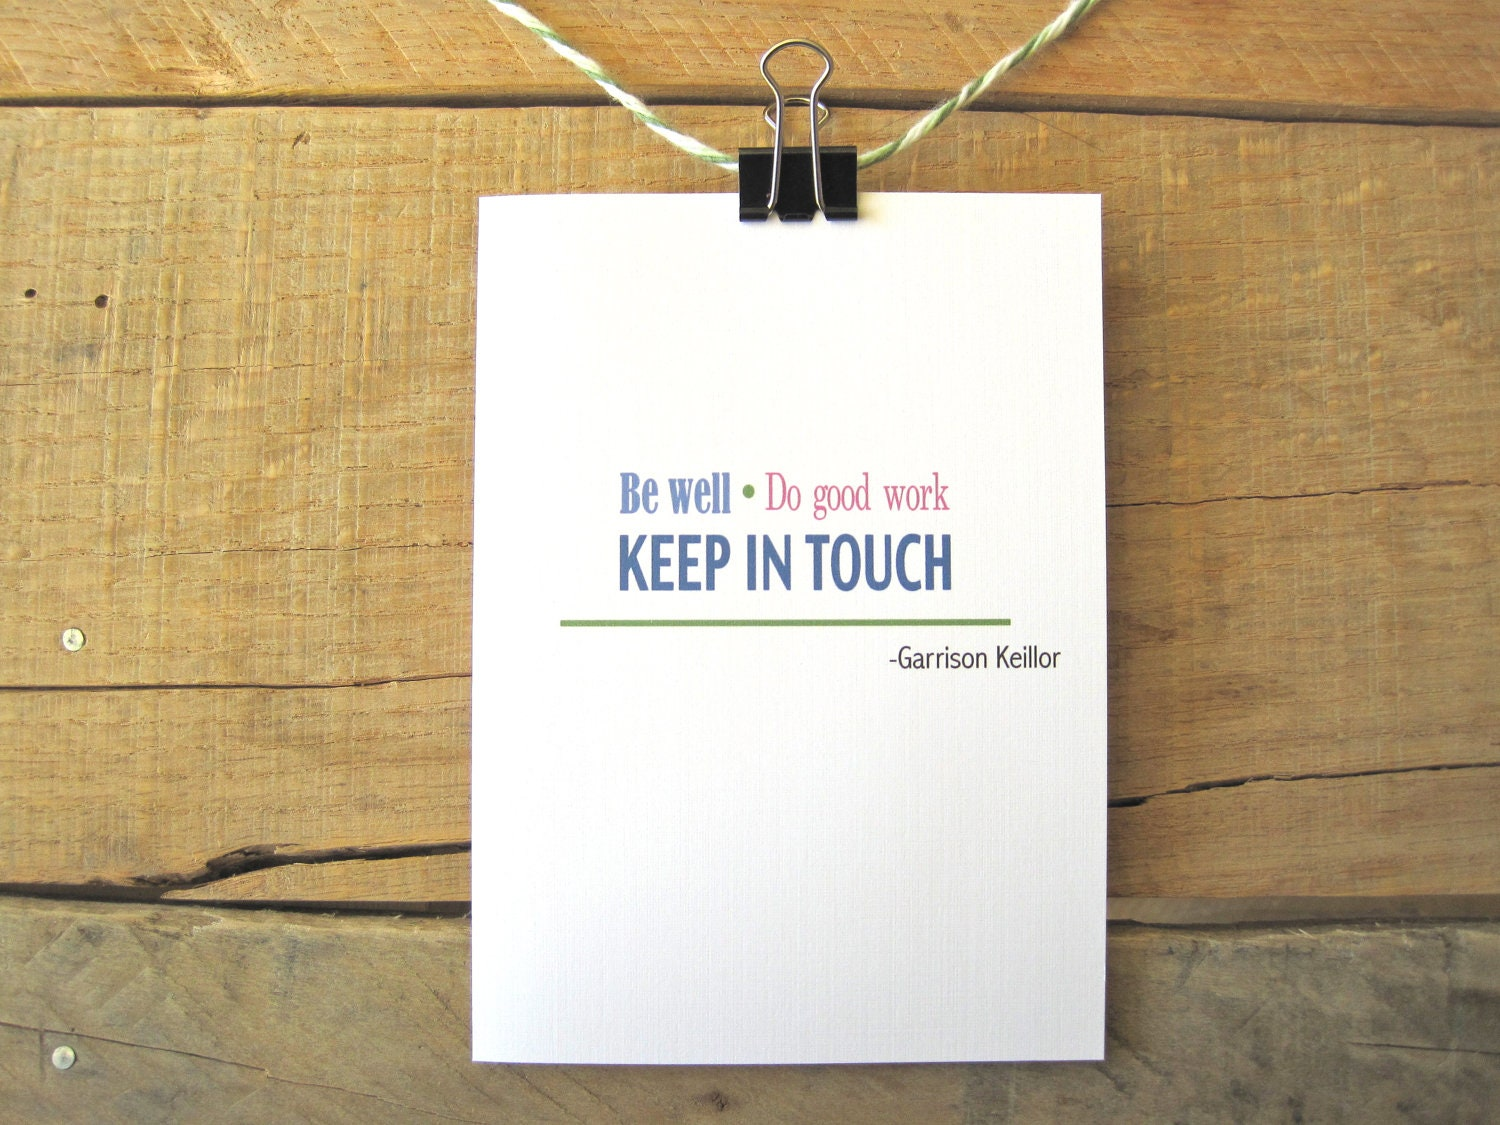 Greeting Card: Be well, do good work, keep in touch, Garrison Keillor, Blank Inside